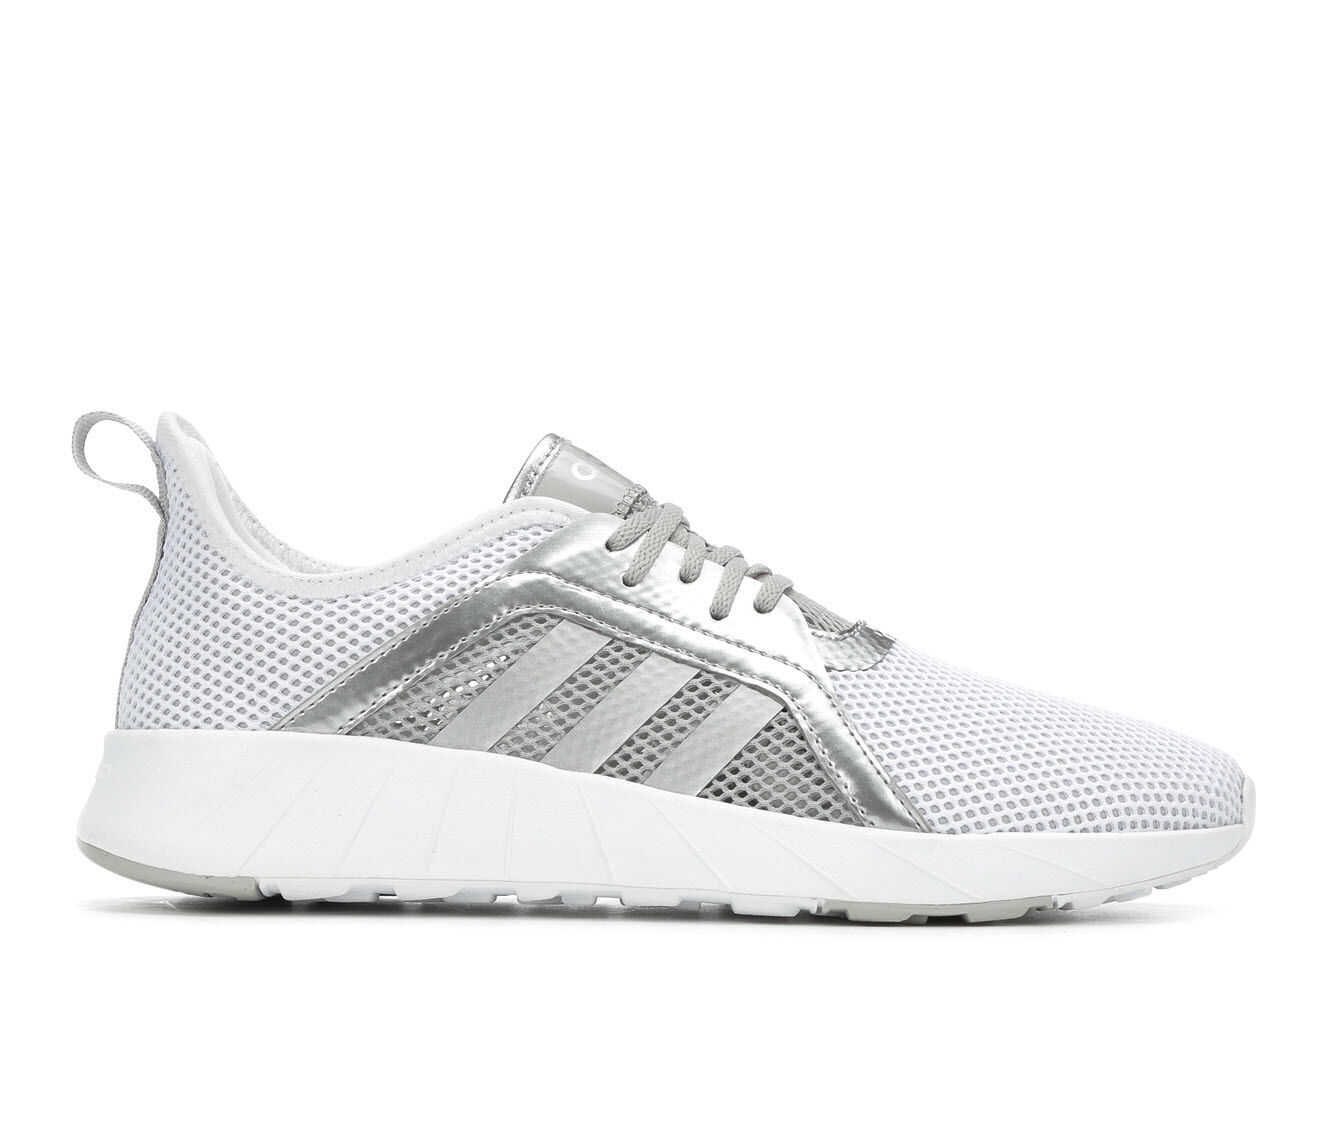 buy latest style Women's Adidas Khoe Run Running Shoes White/Grey/Silv